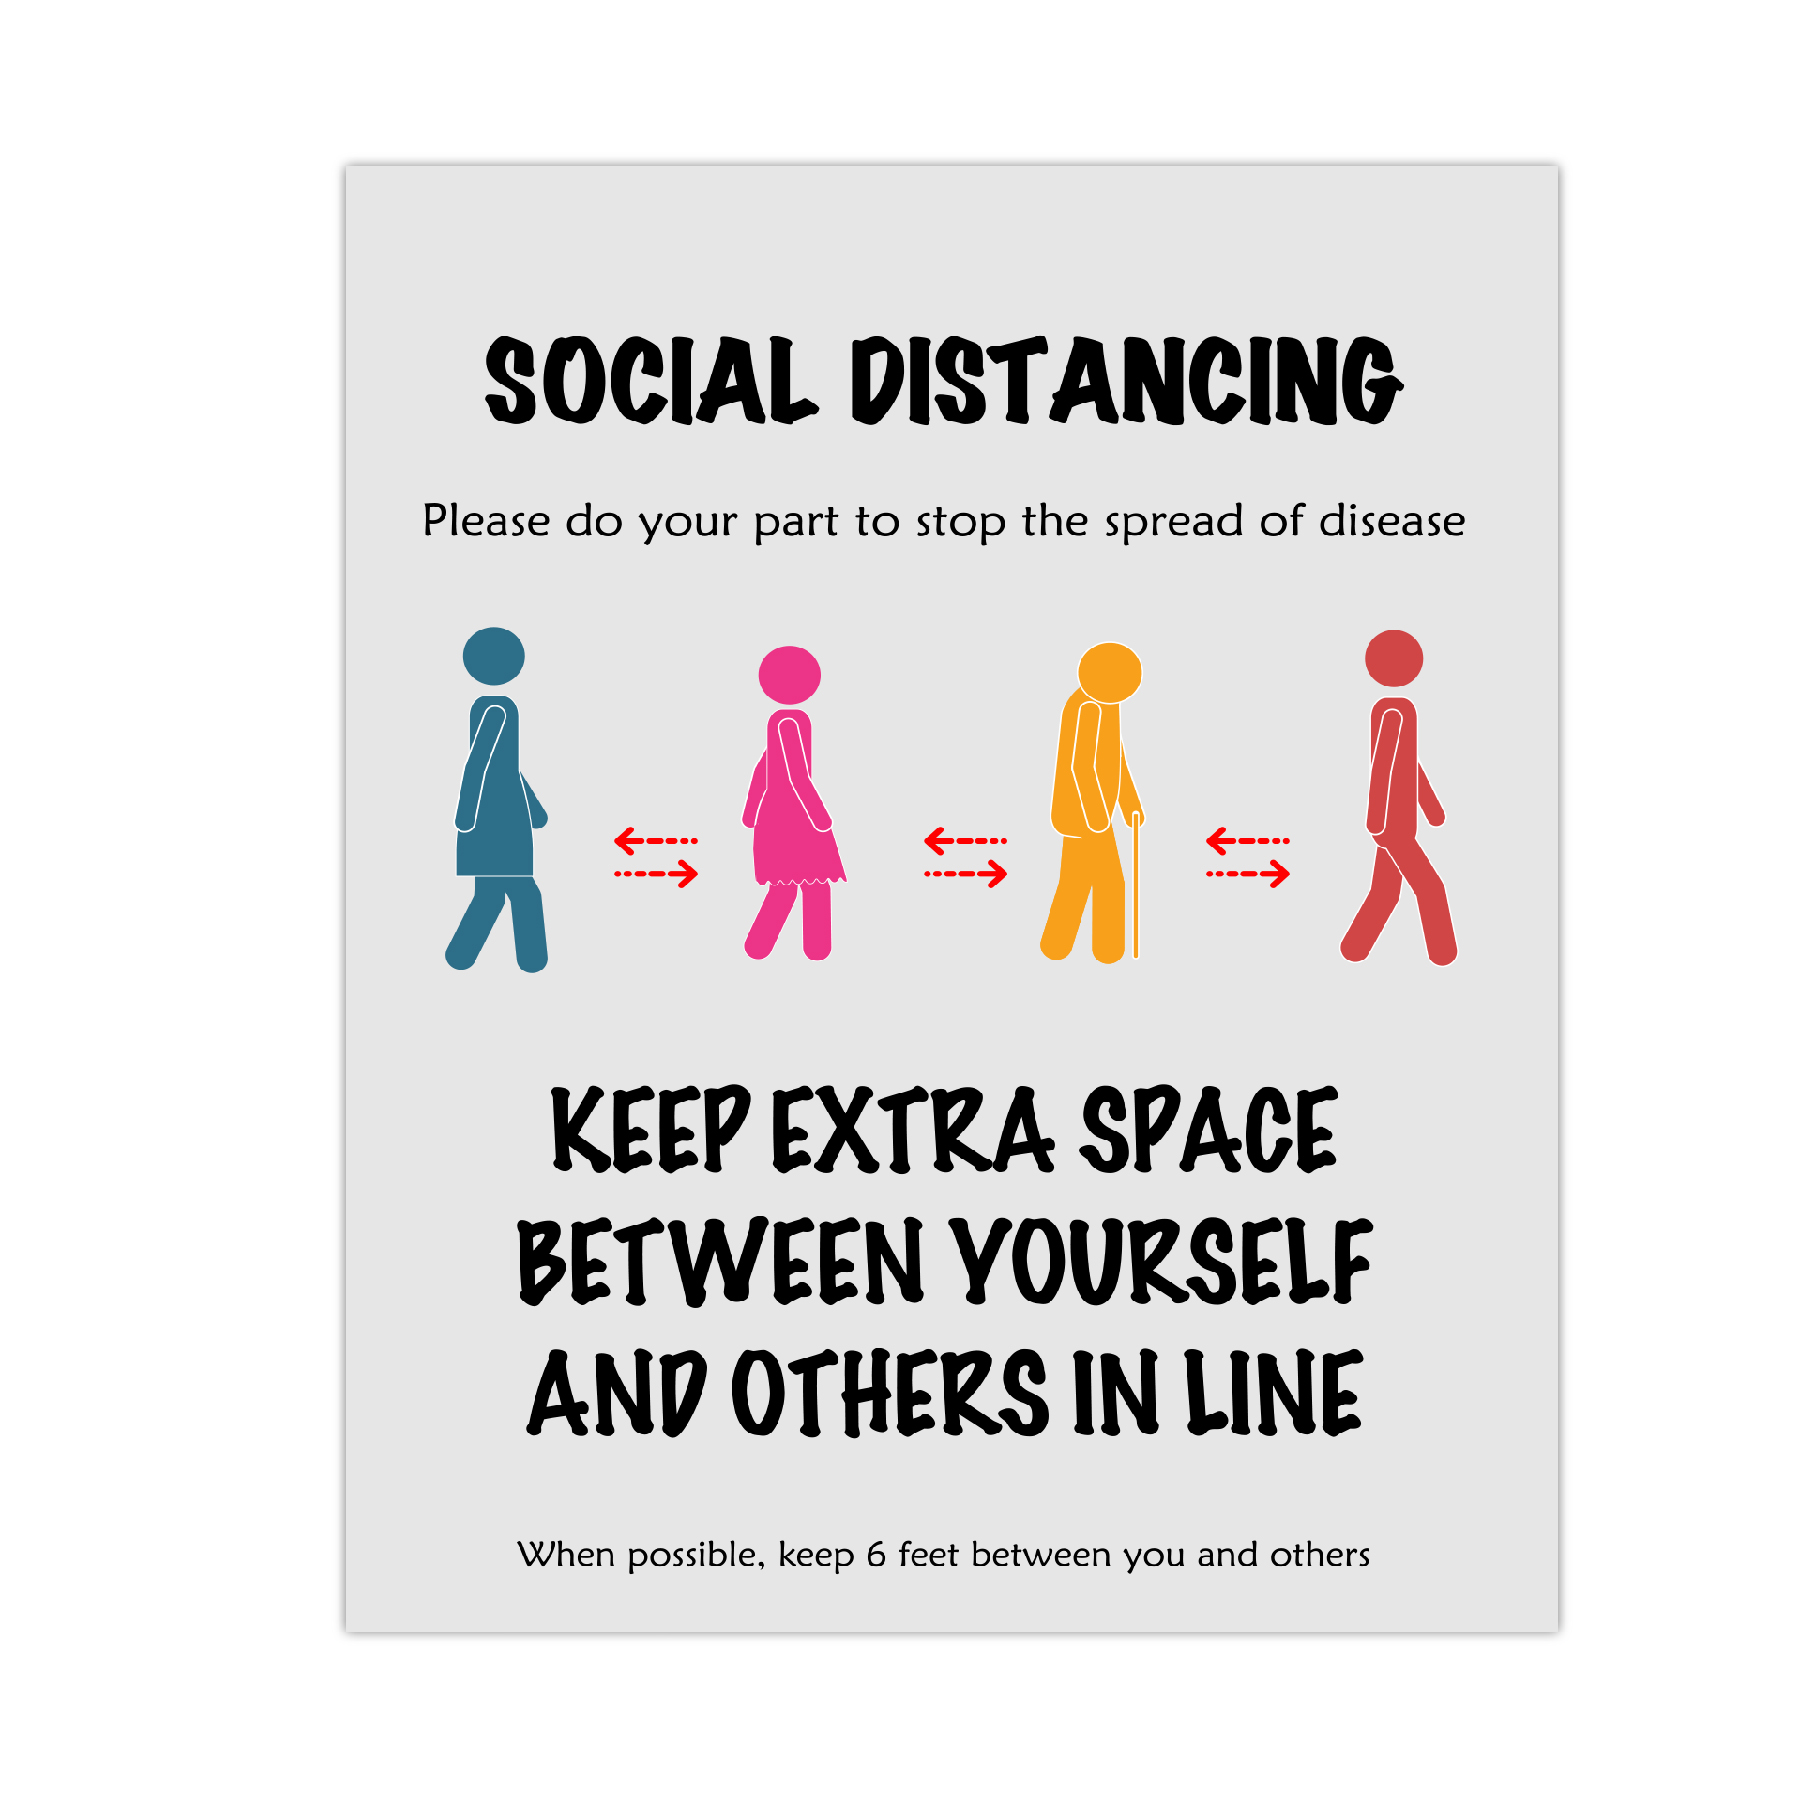 Social Distancing Poster To Stop Spread Of COVID-19 11x17